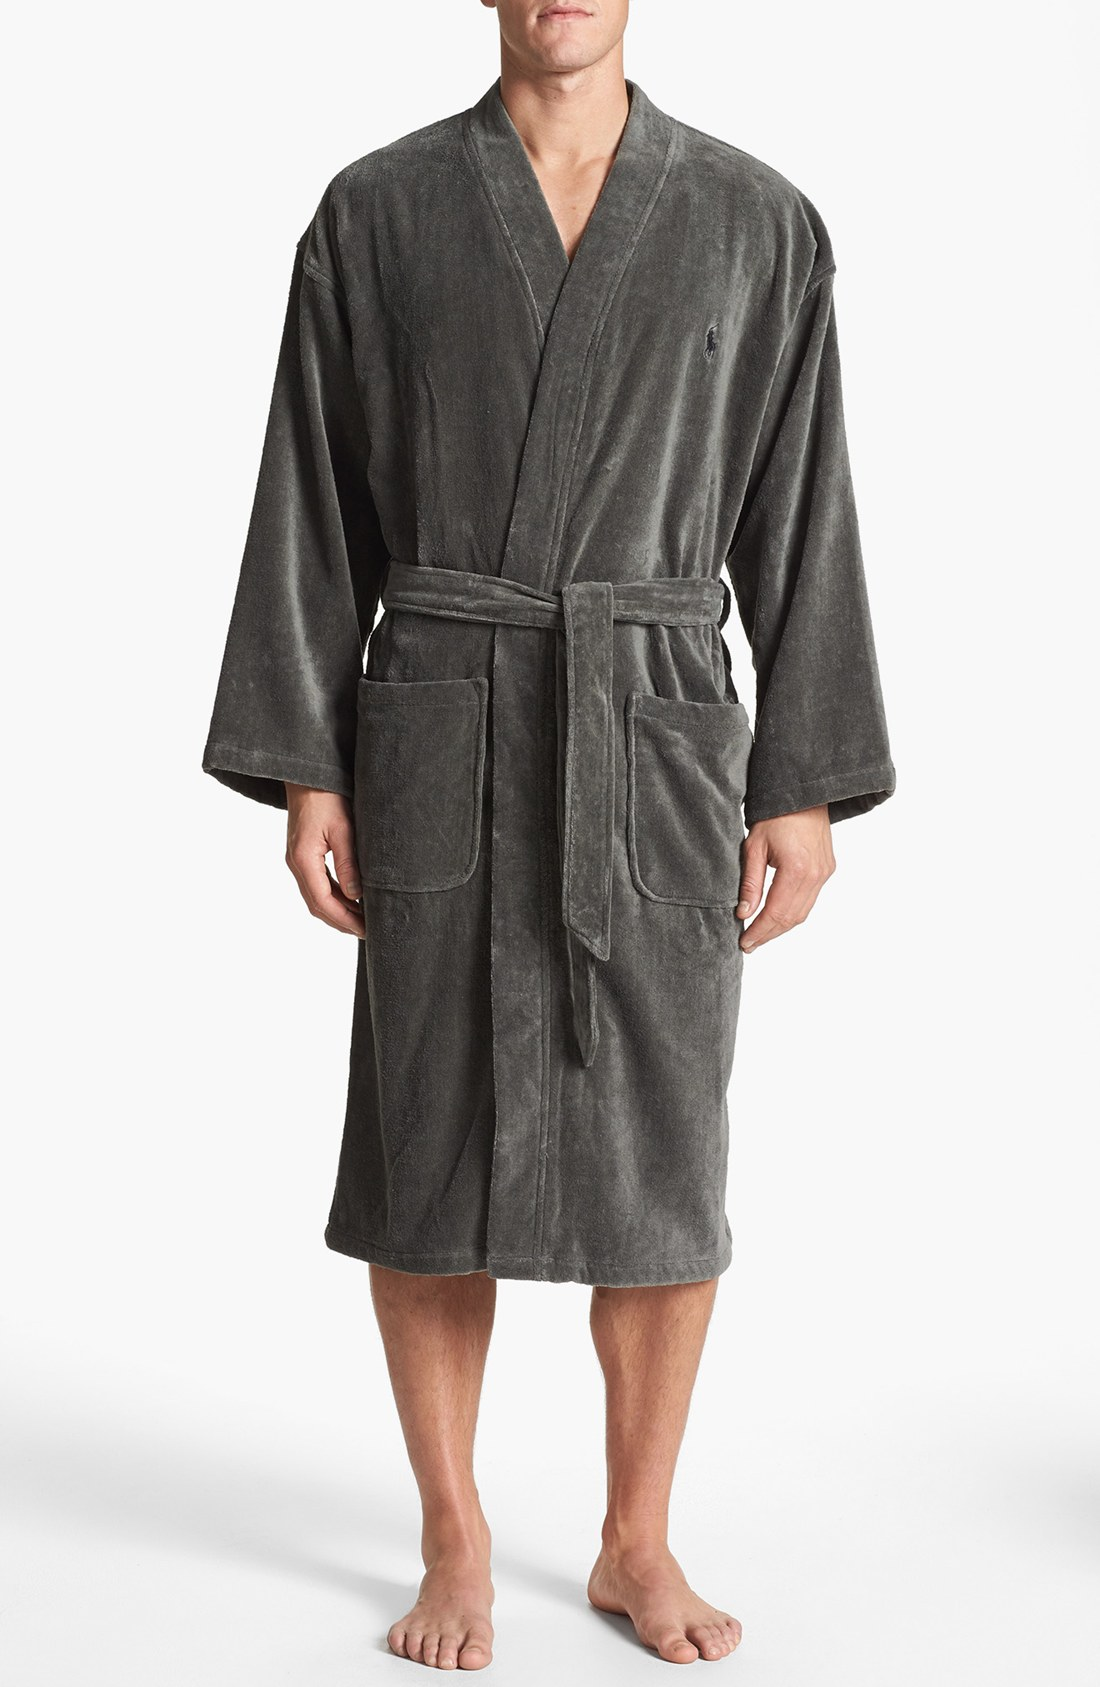 polo ralph lauren velour kimono robe in black for men smokey black lyst. Black Bedroom Furniture Sets. Home Design Ideas